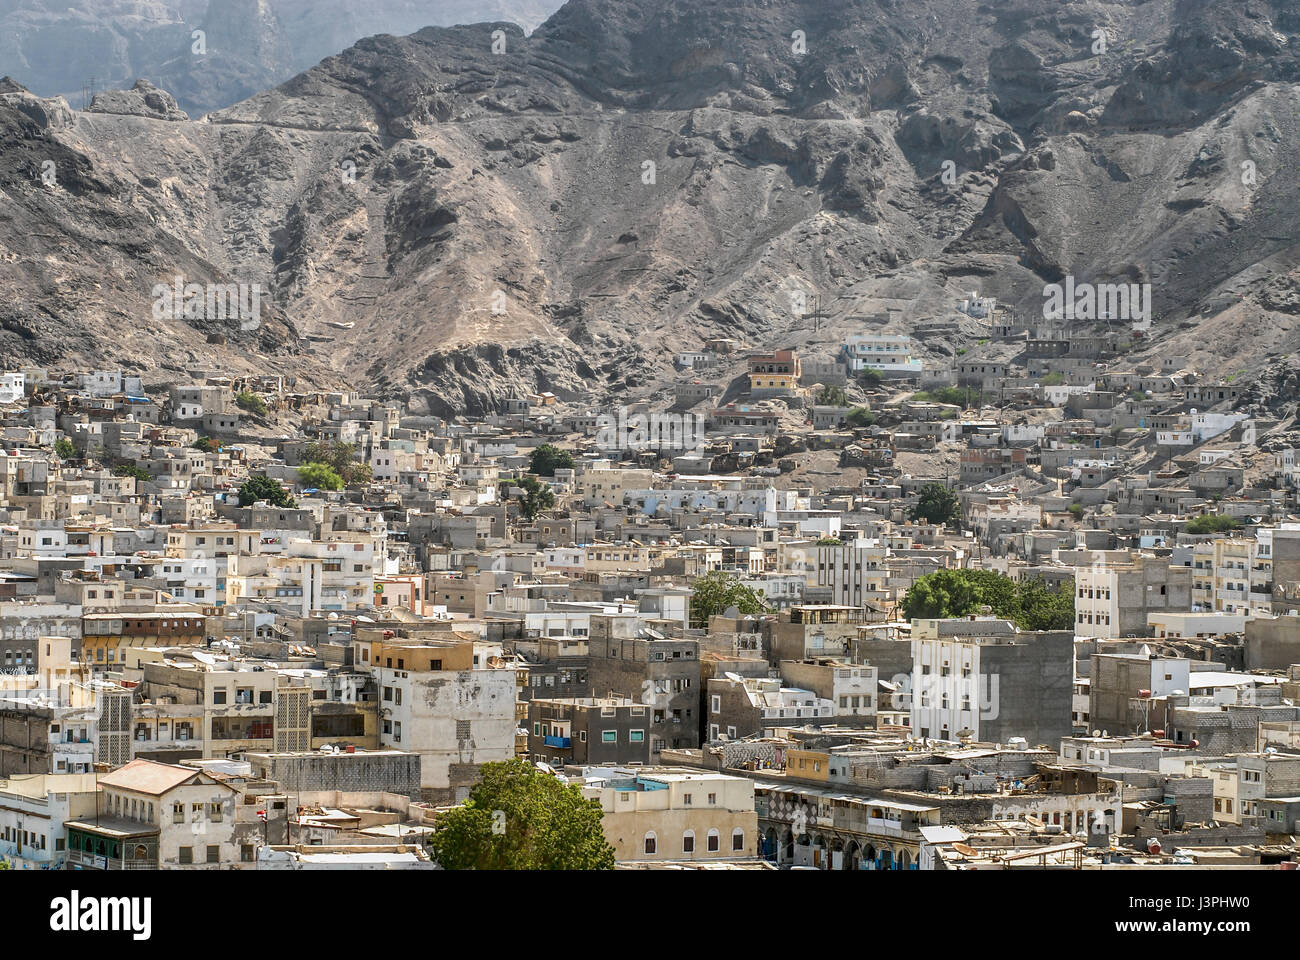 View over the ancient city centre of Aden, Yemen - Stock Image